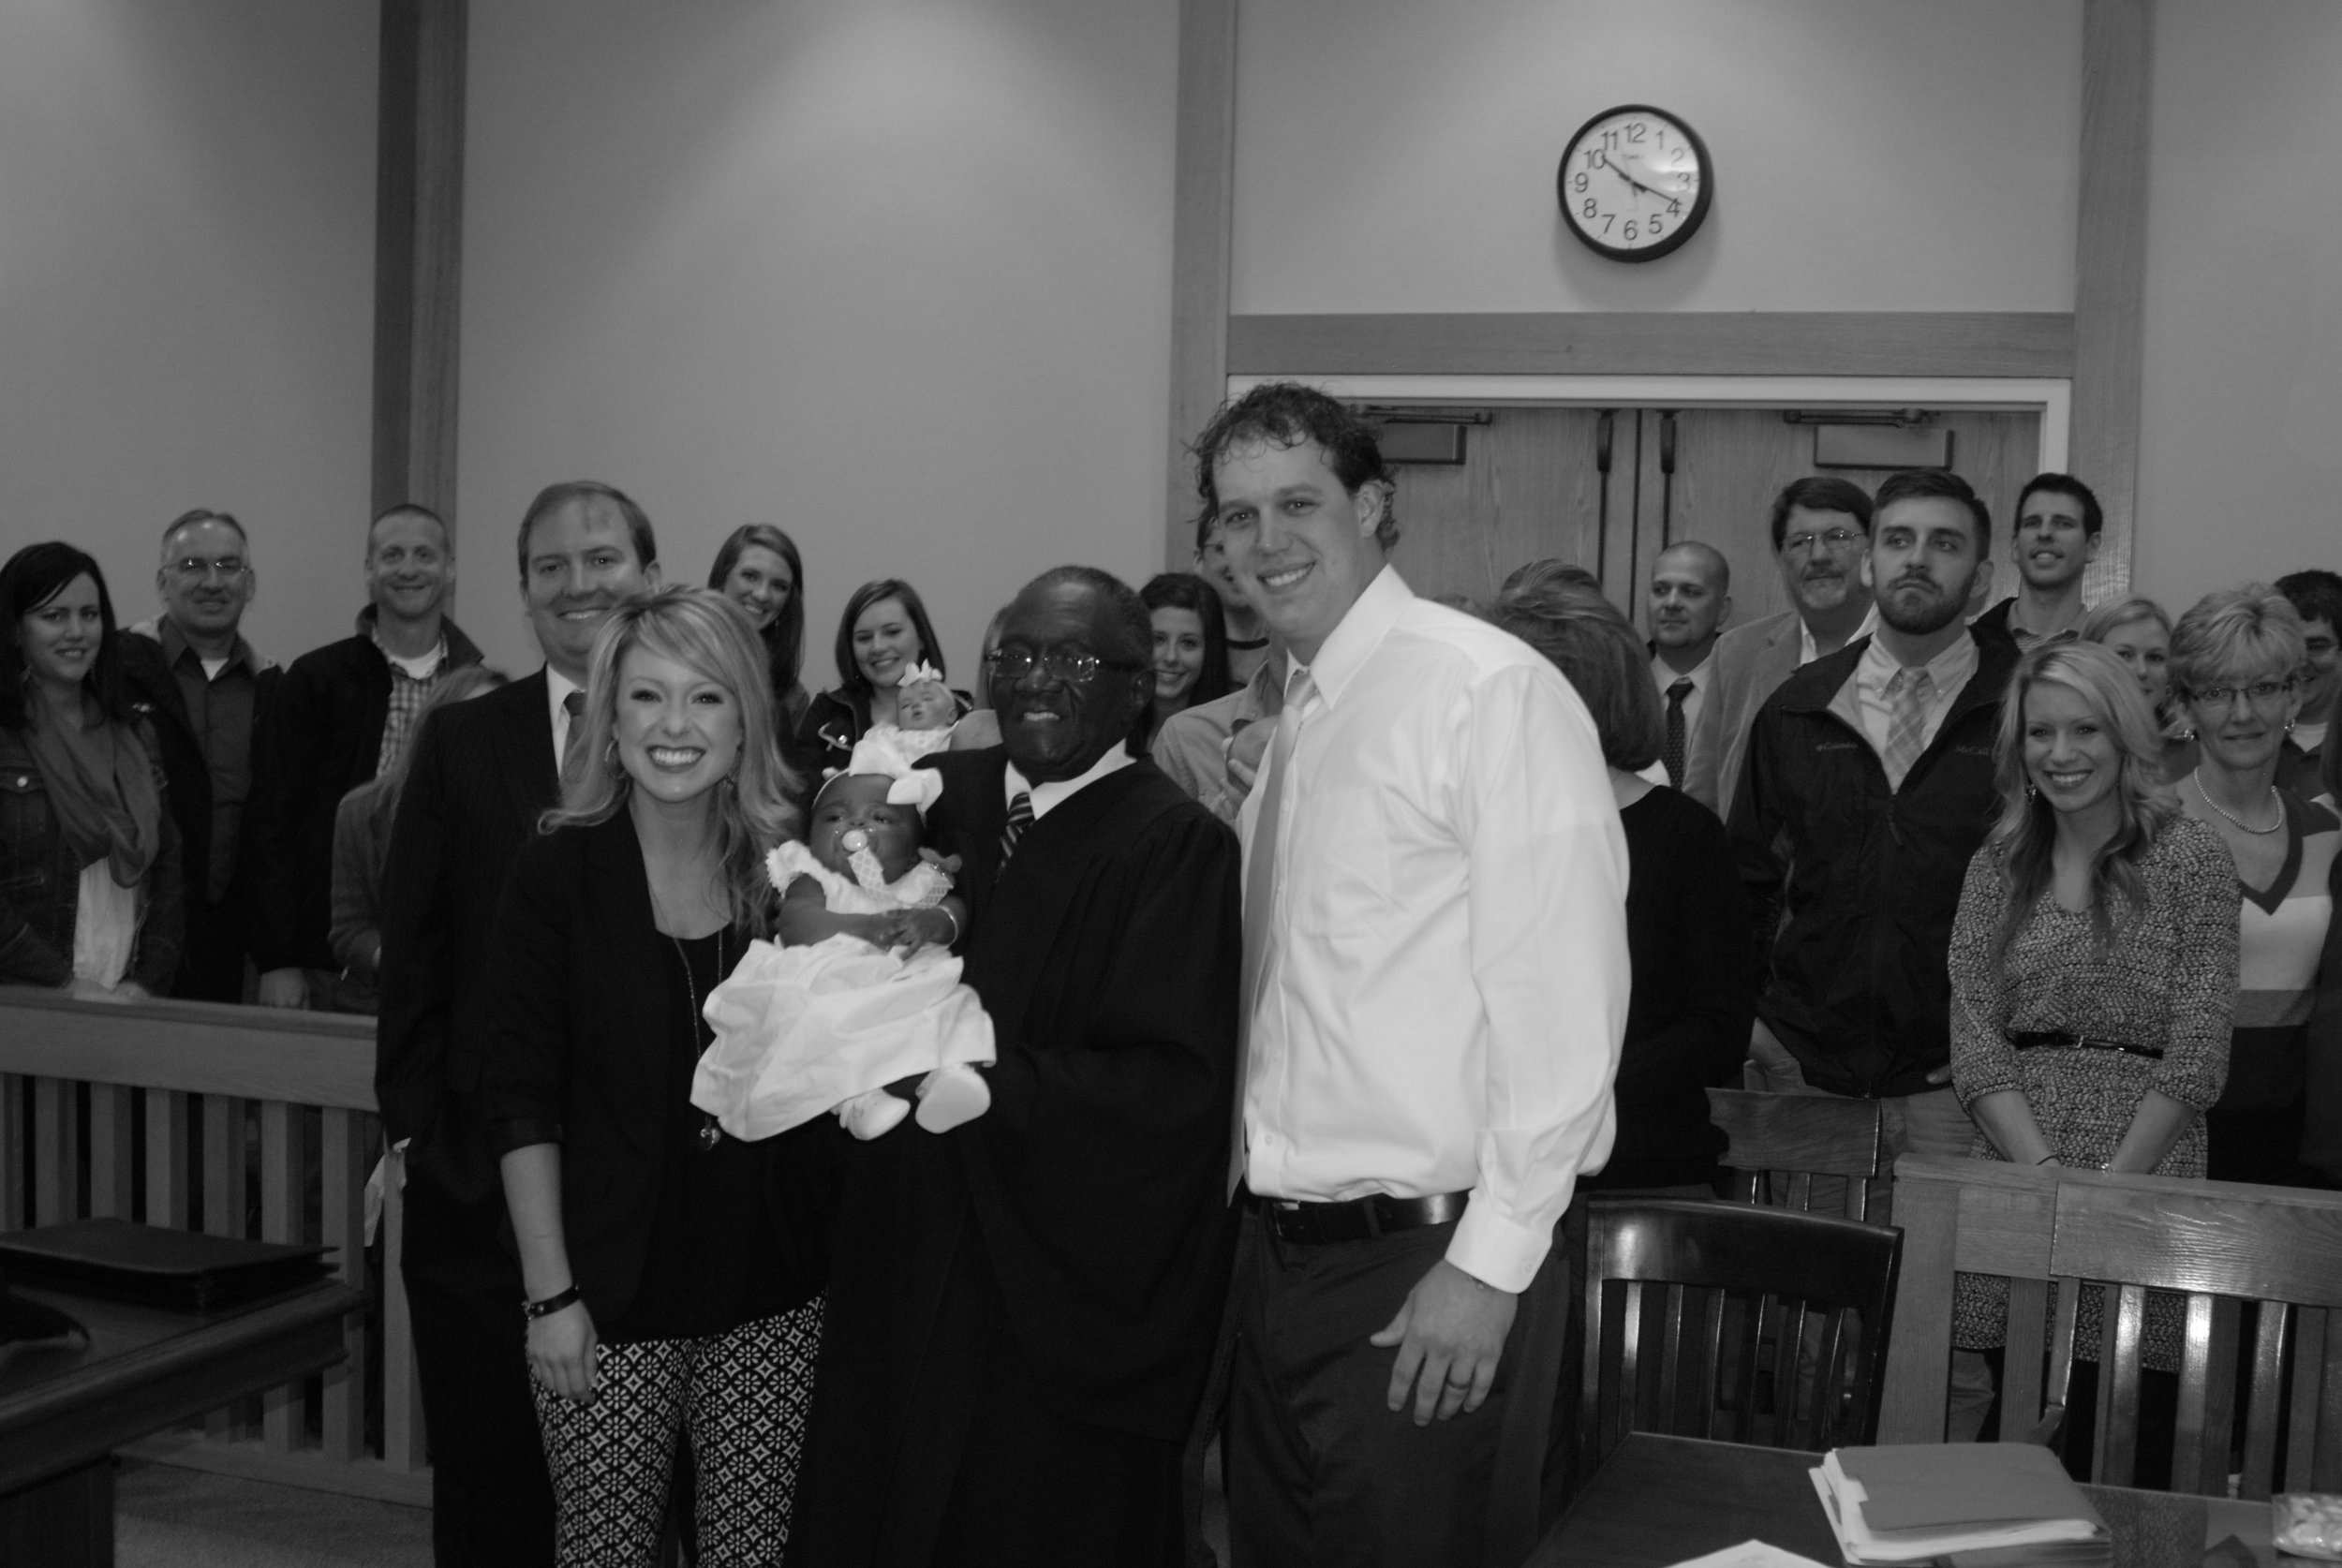 We literally had so many people come to support us, our lawyer was nervous! He said he had never seen so many people fit in that courtroom before! It was a precious day!